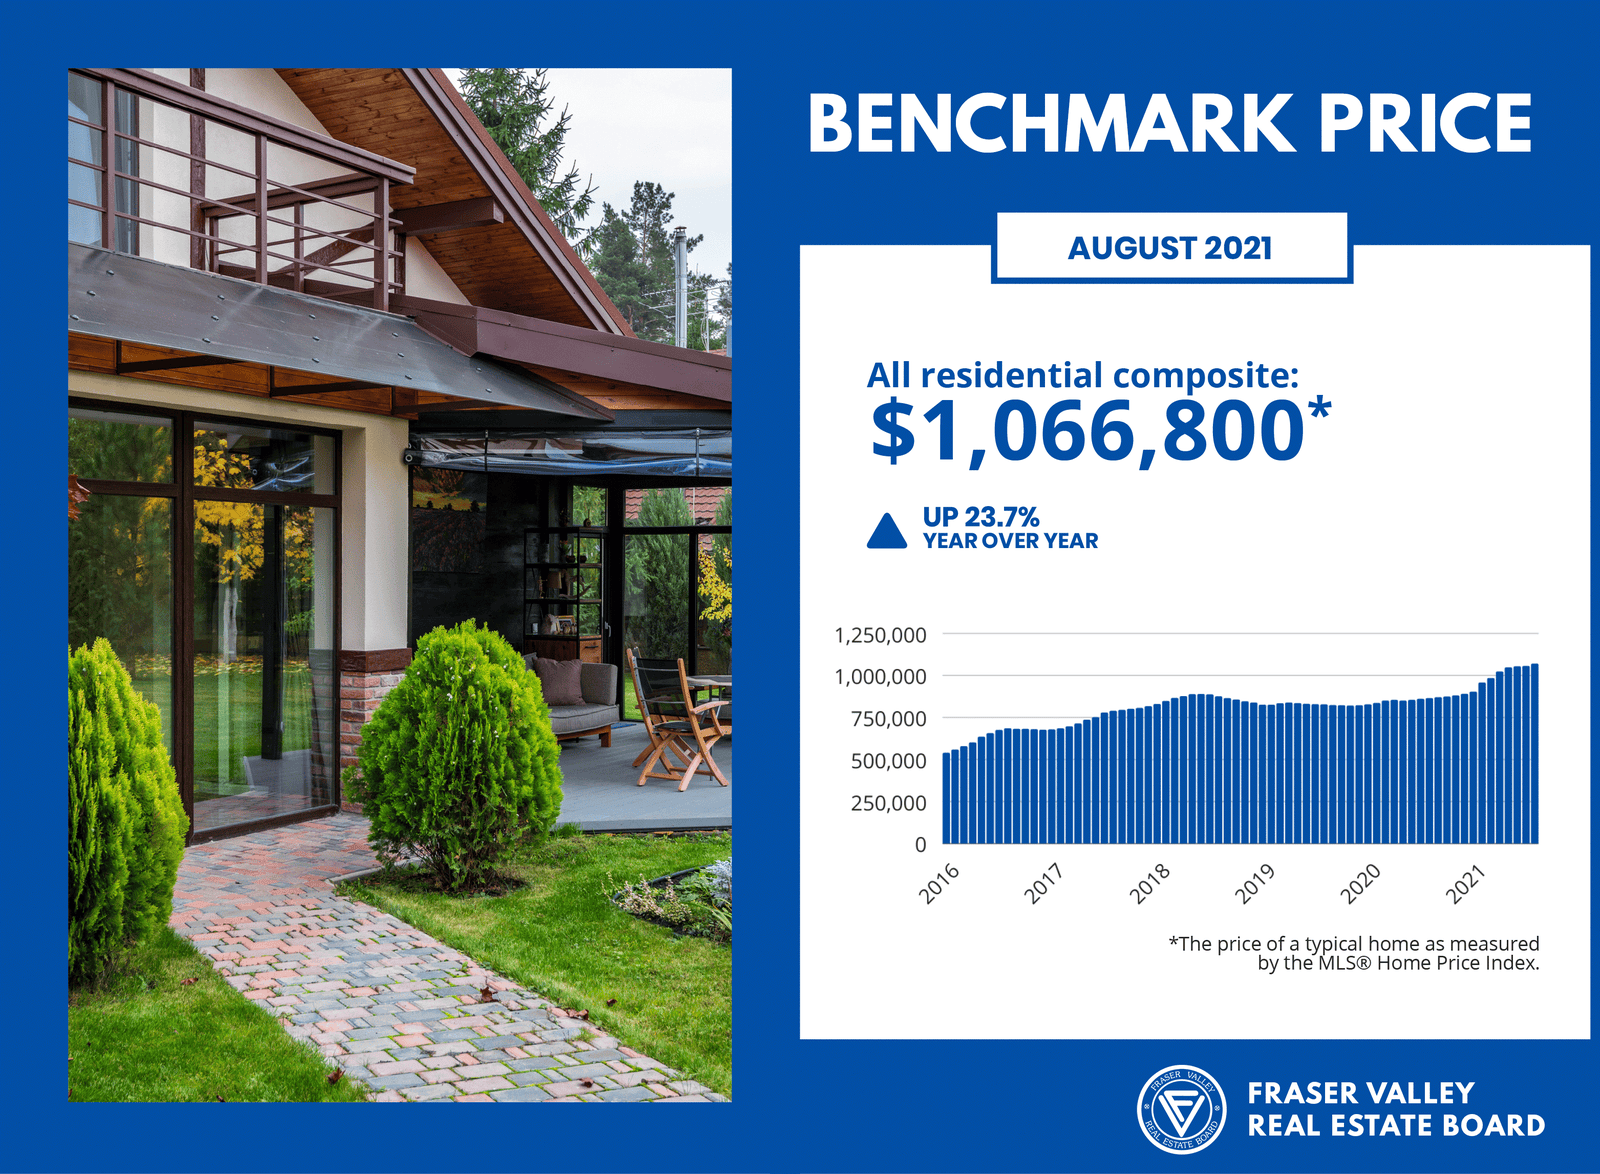 Fraser Valley Real Estate Board August 2021 - Benchmark Price